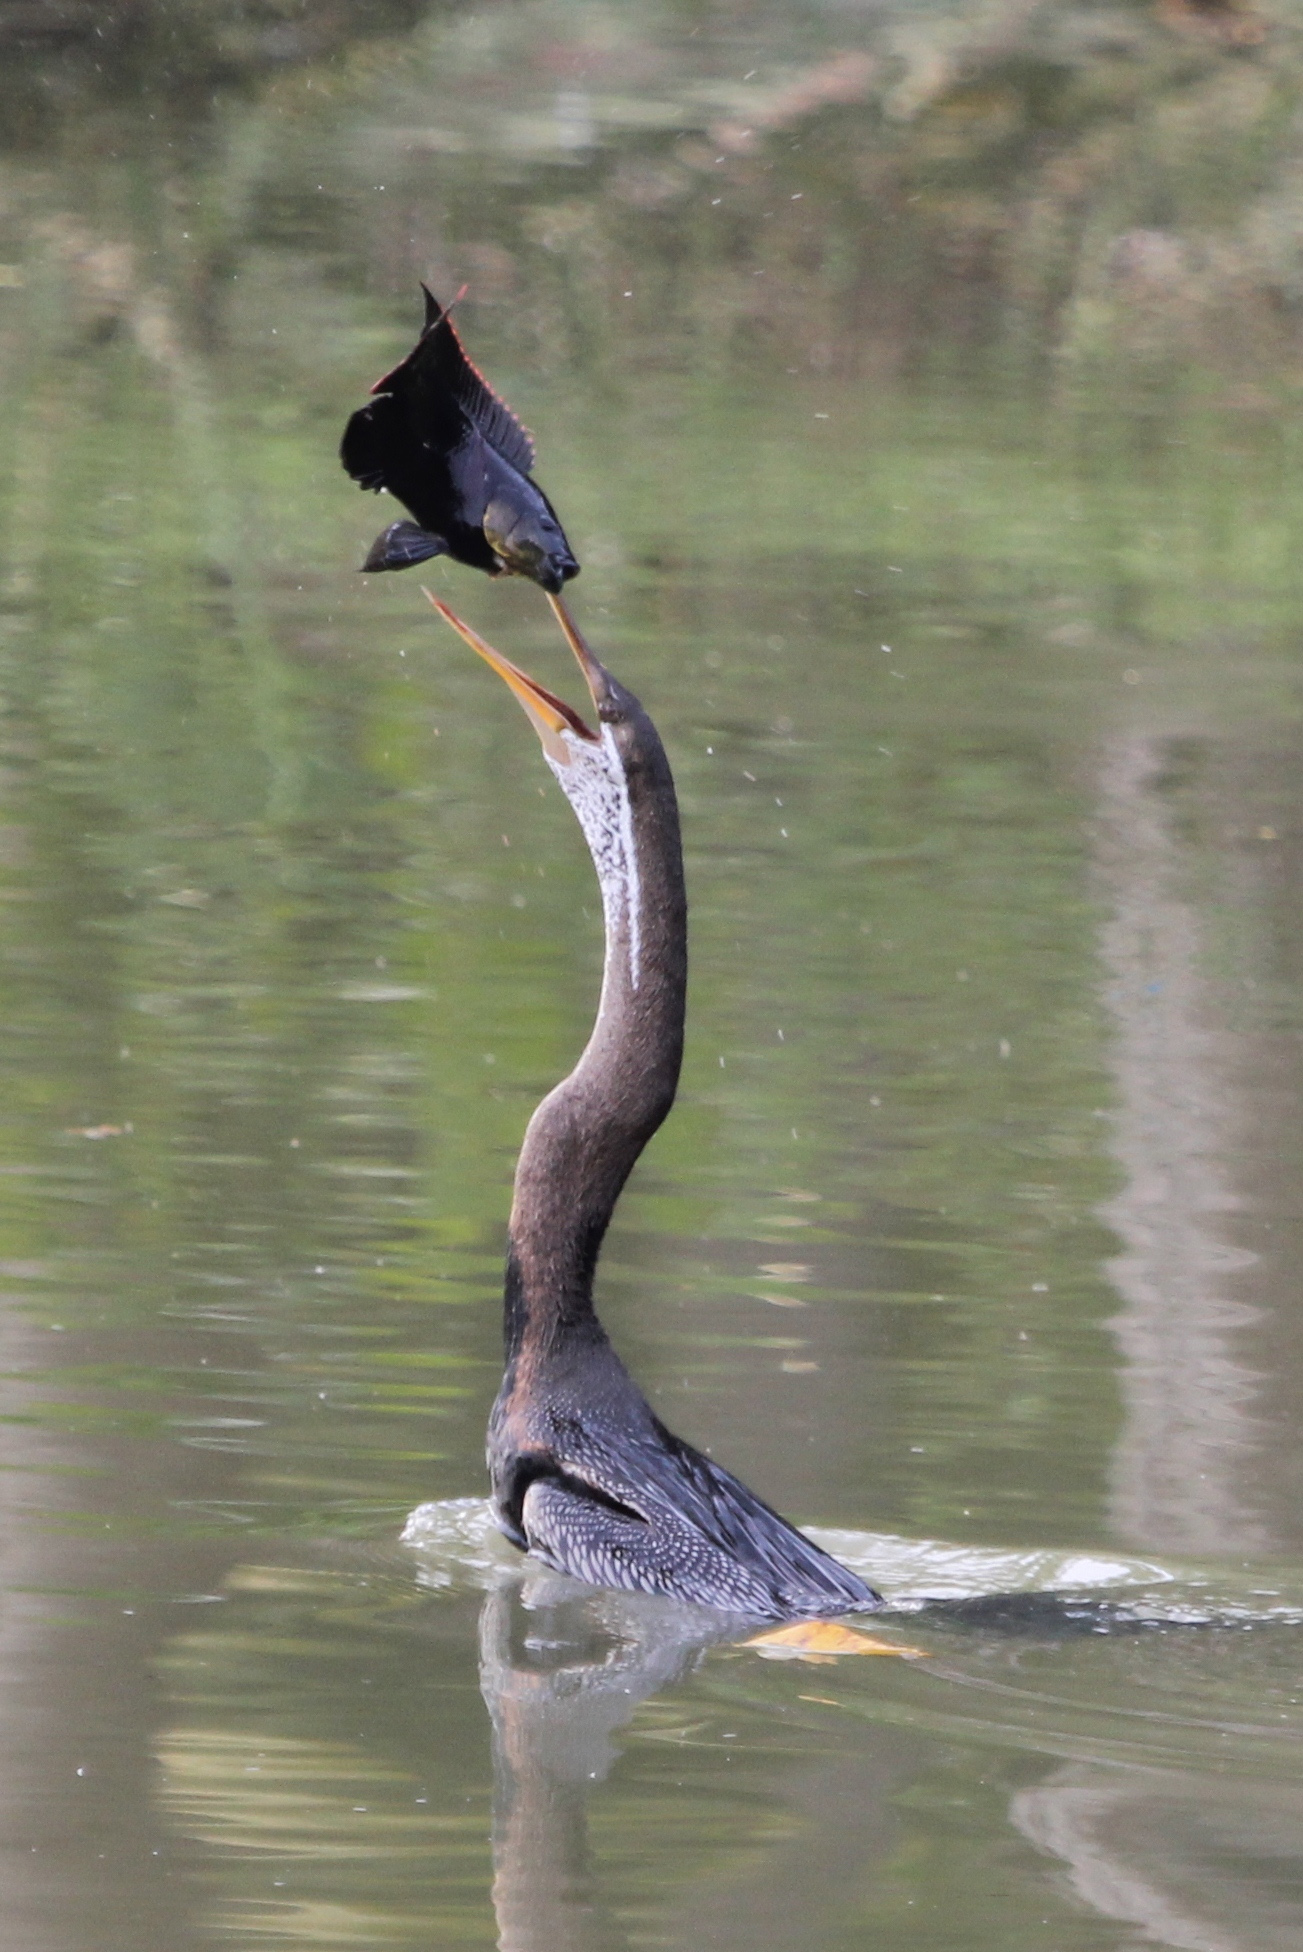 Indian Darter tossing a fish into its mouth